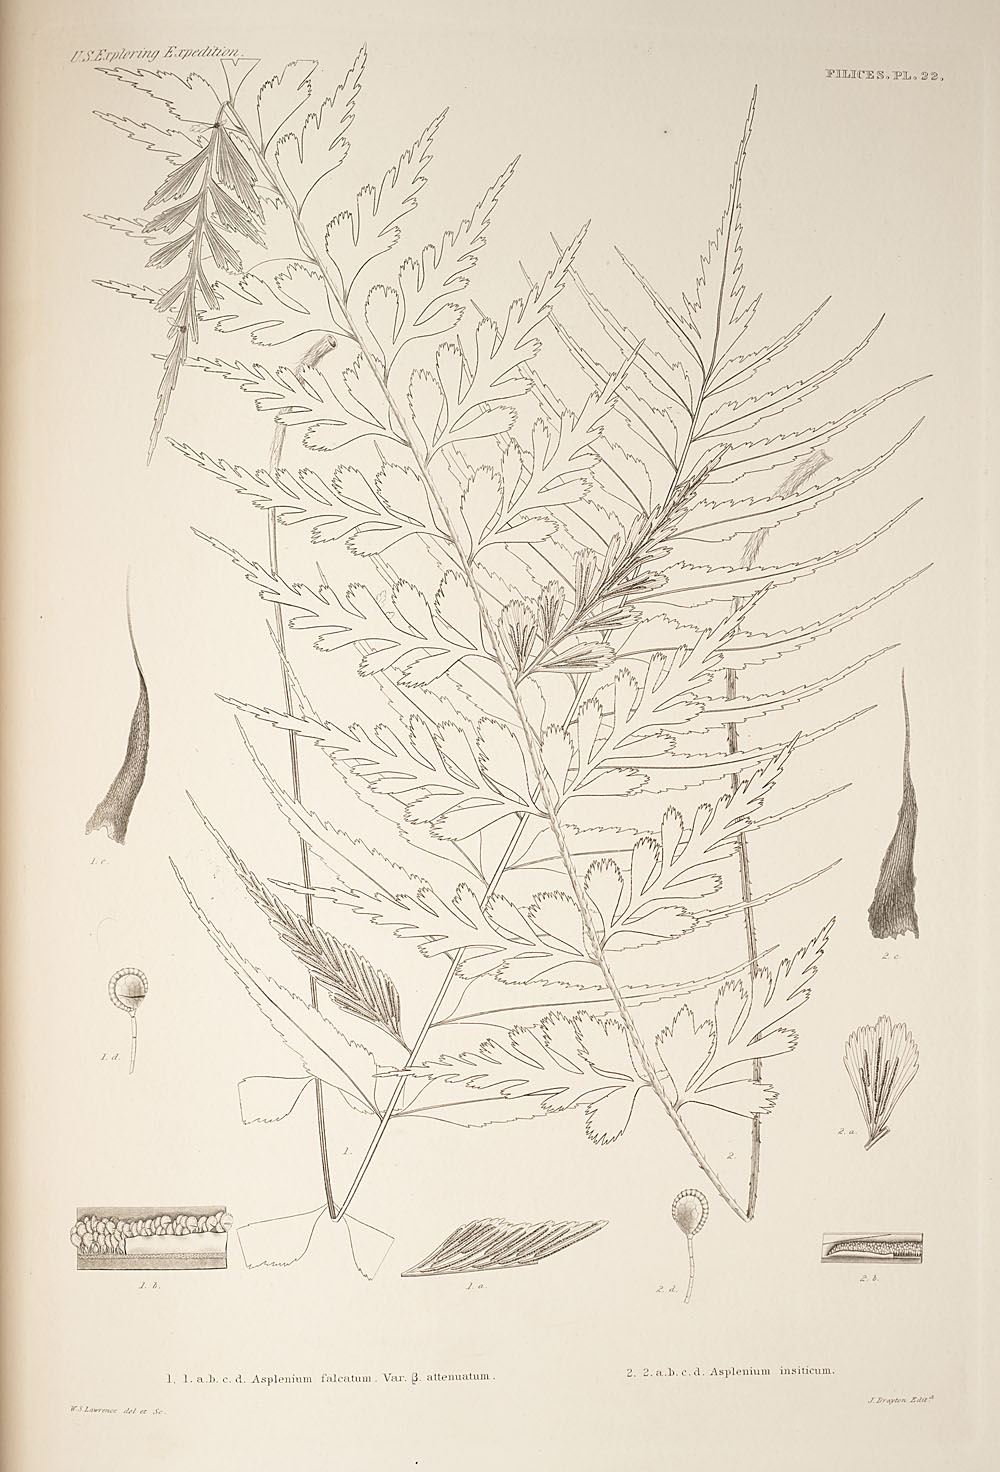 Two figures of genus Asplenium,  Image number:SIL19-24a-034